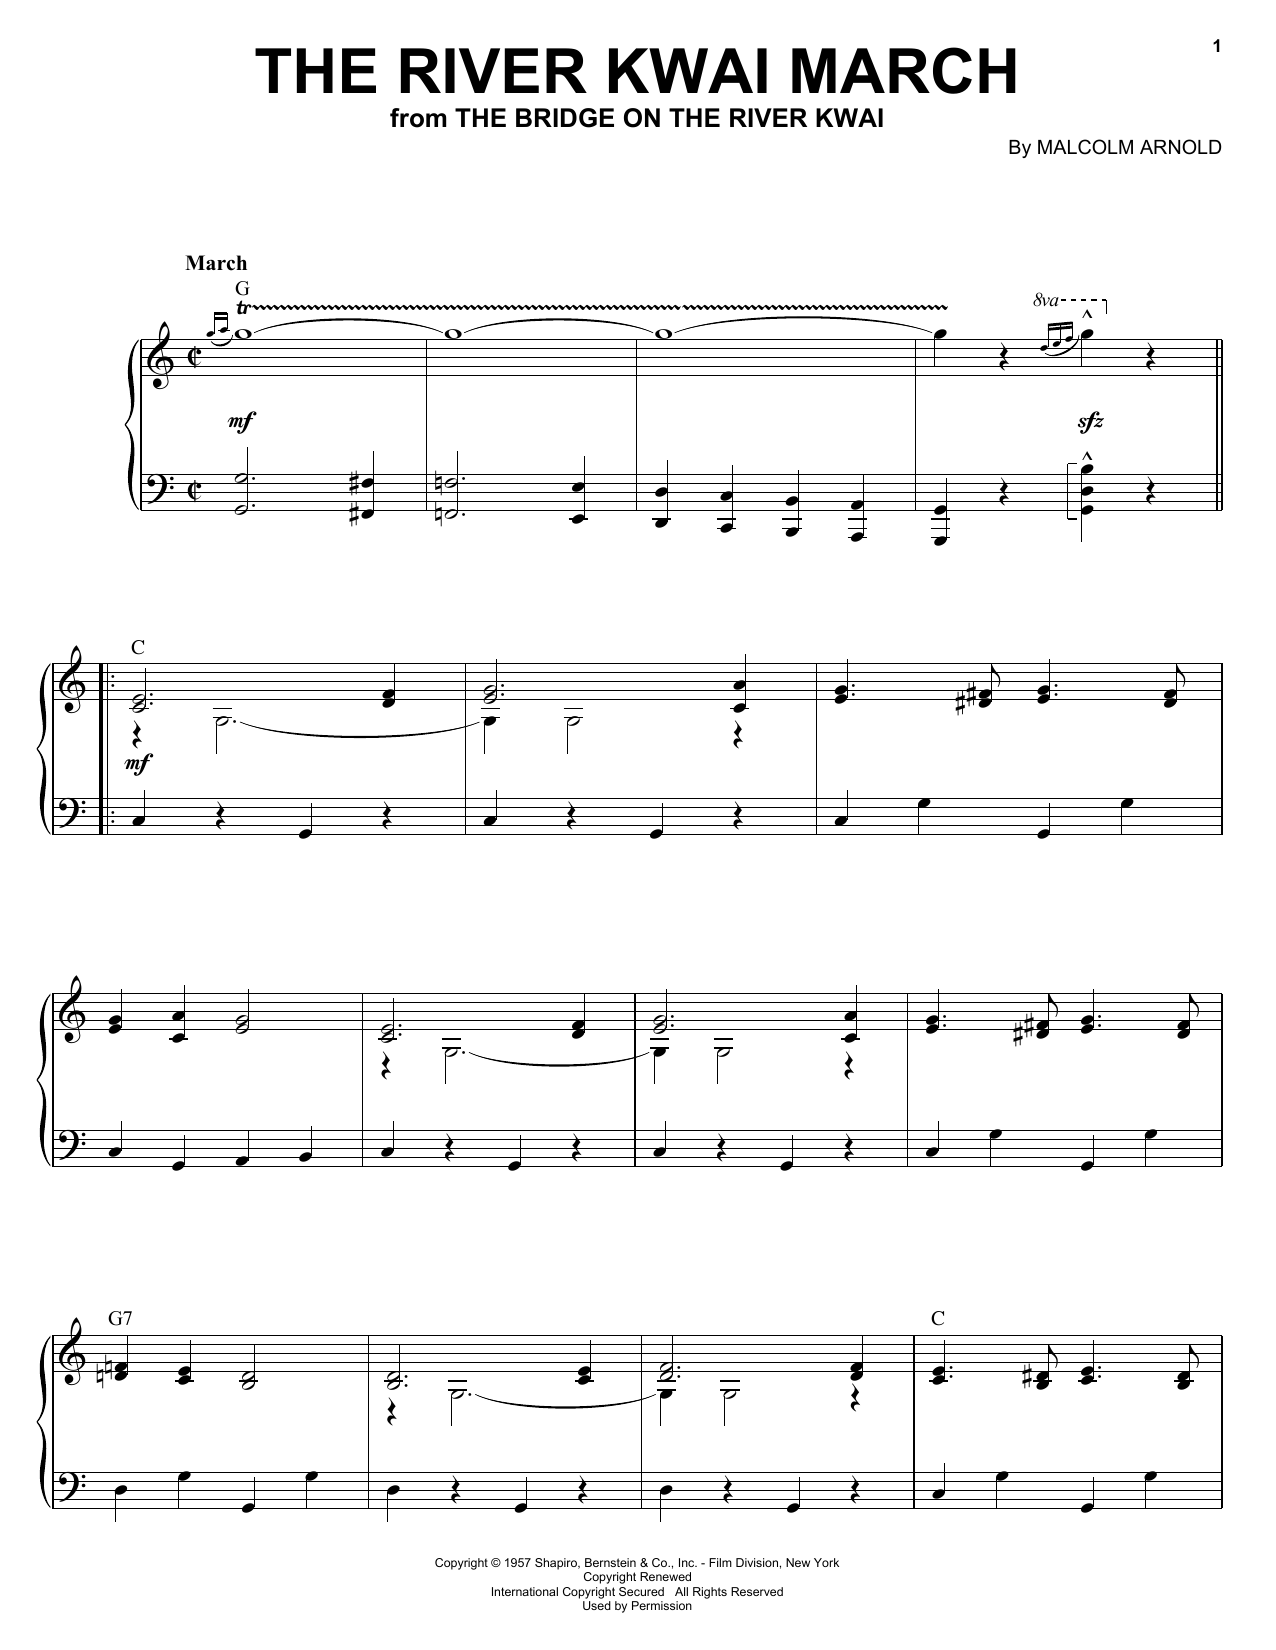 Malcolm Arnold The River Kwai March sheet music notes and chords. Download Printable PDF.